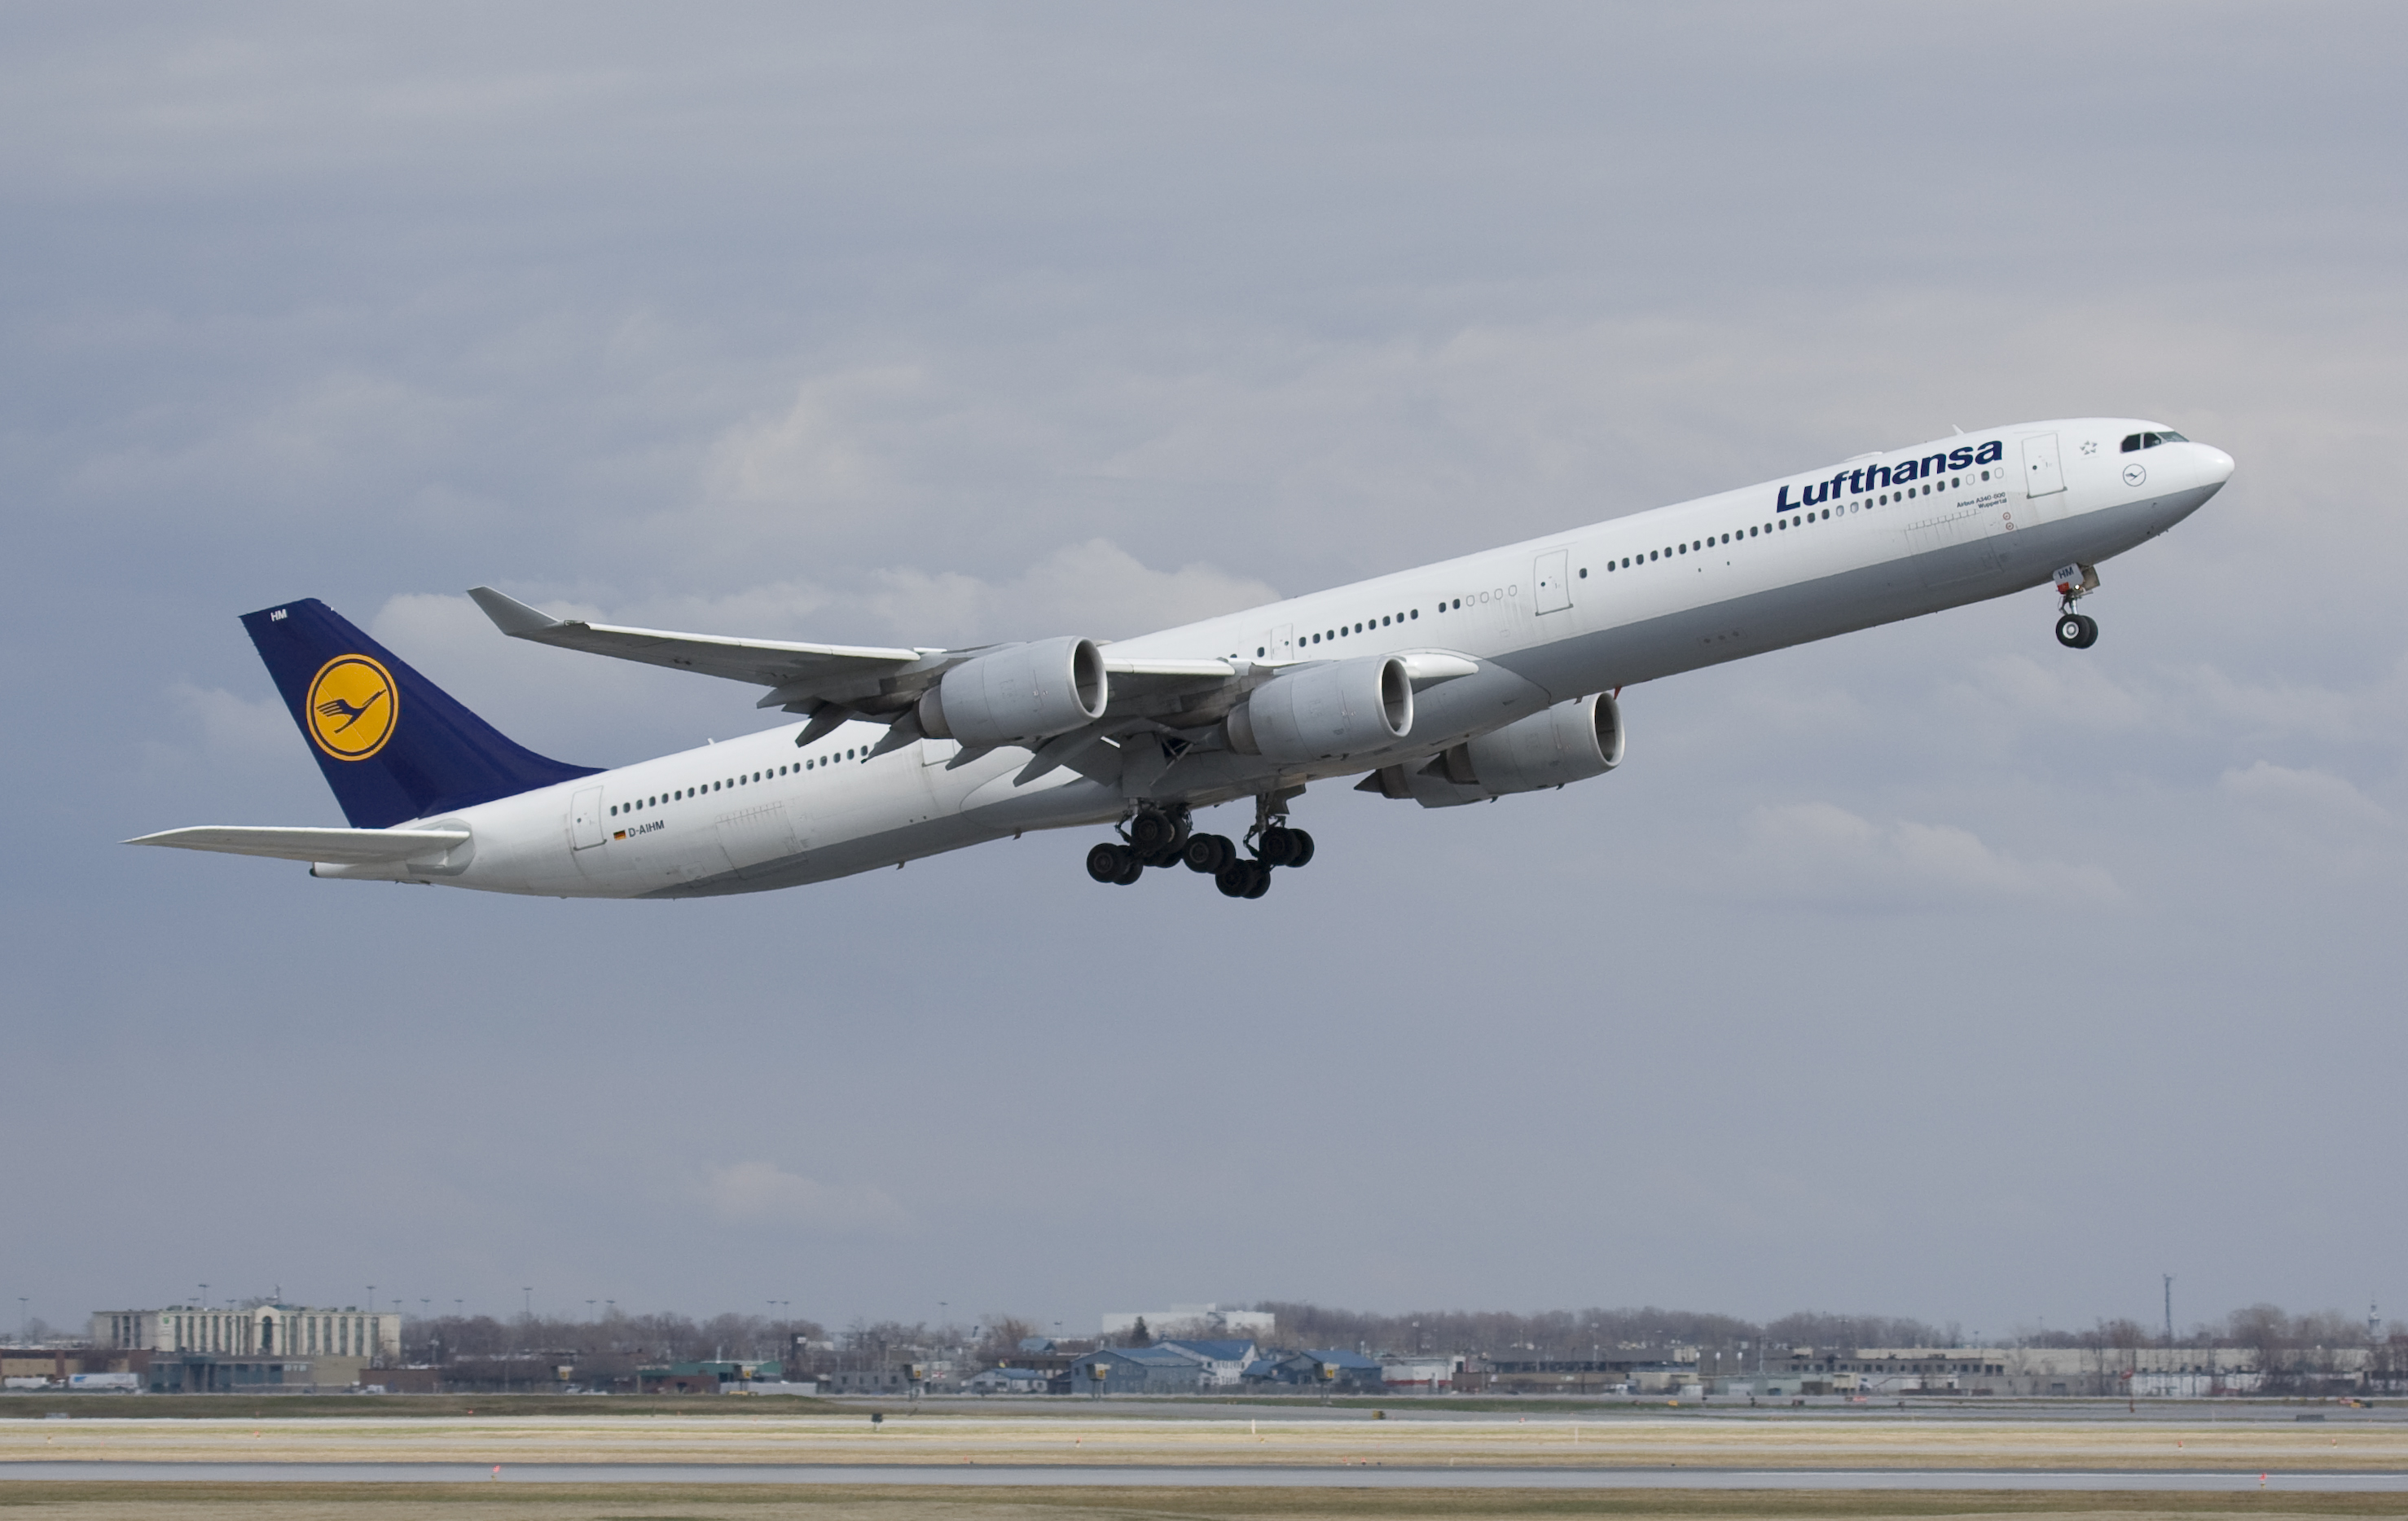 lufthansa starts airbus a340 600 phase out